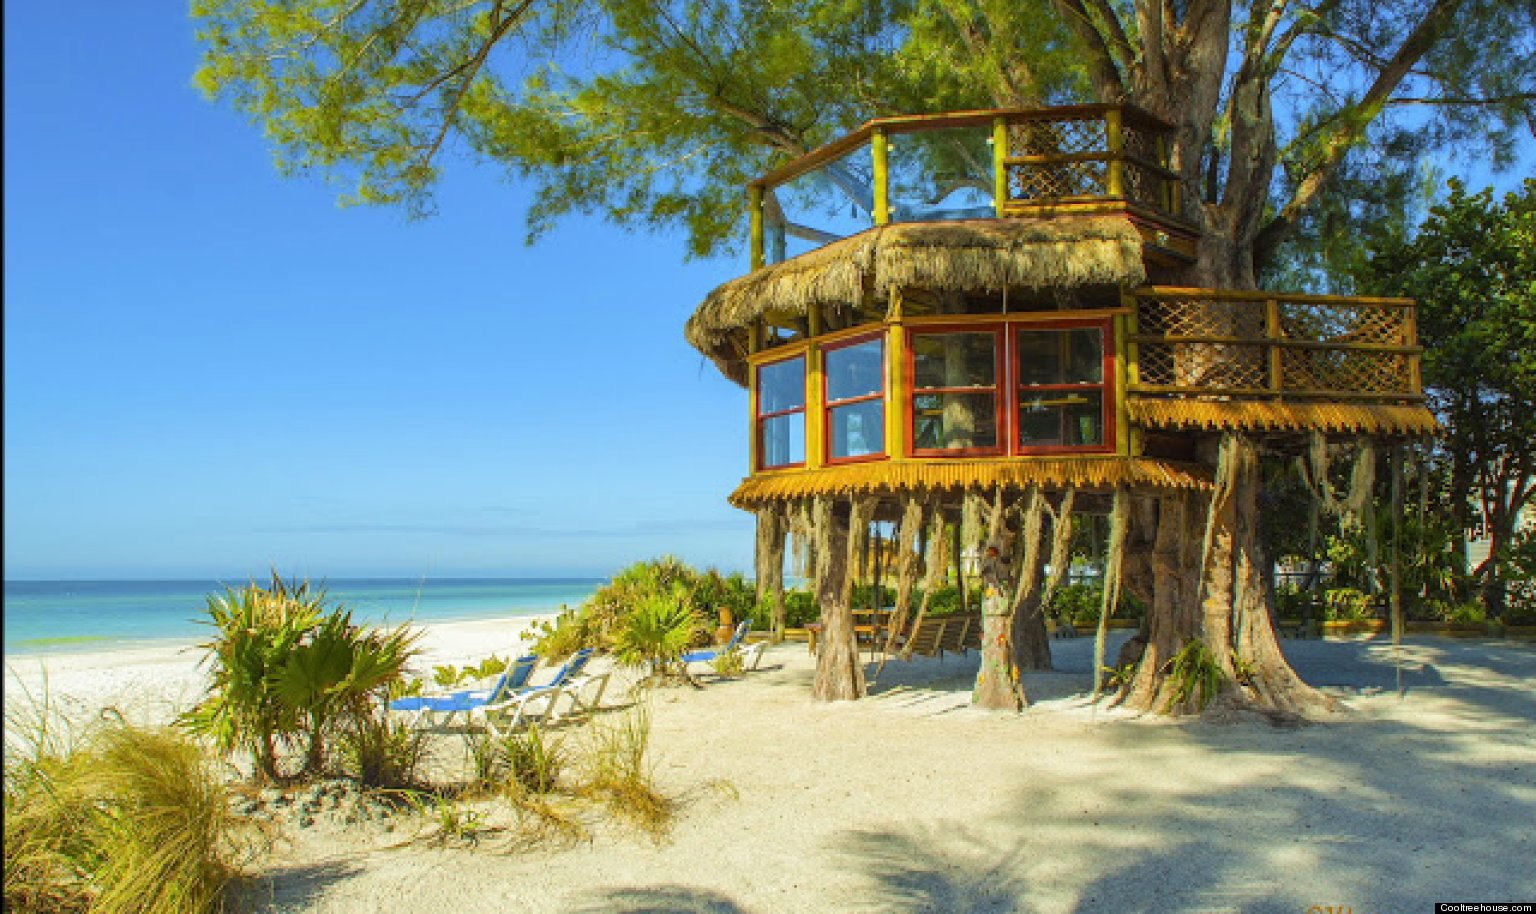 florida couple u0027s elaborate beach treehouse could be torn down